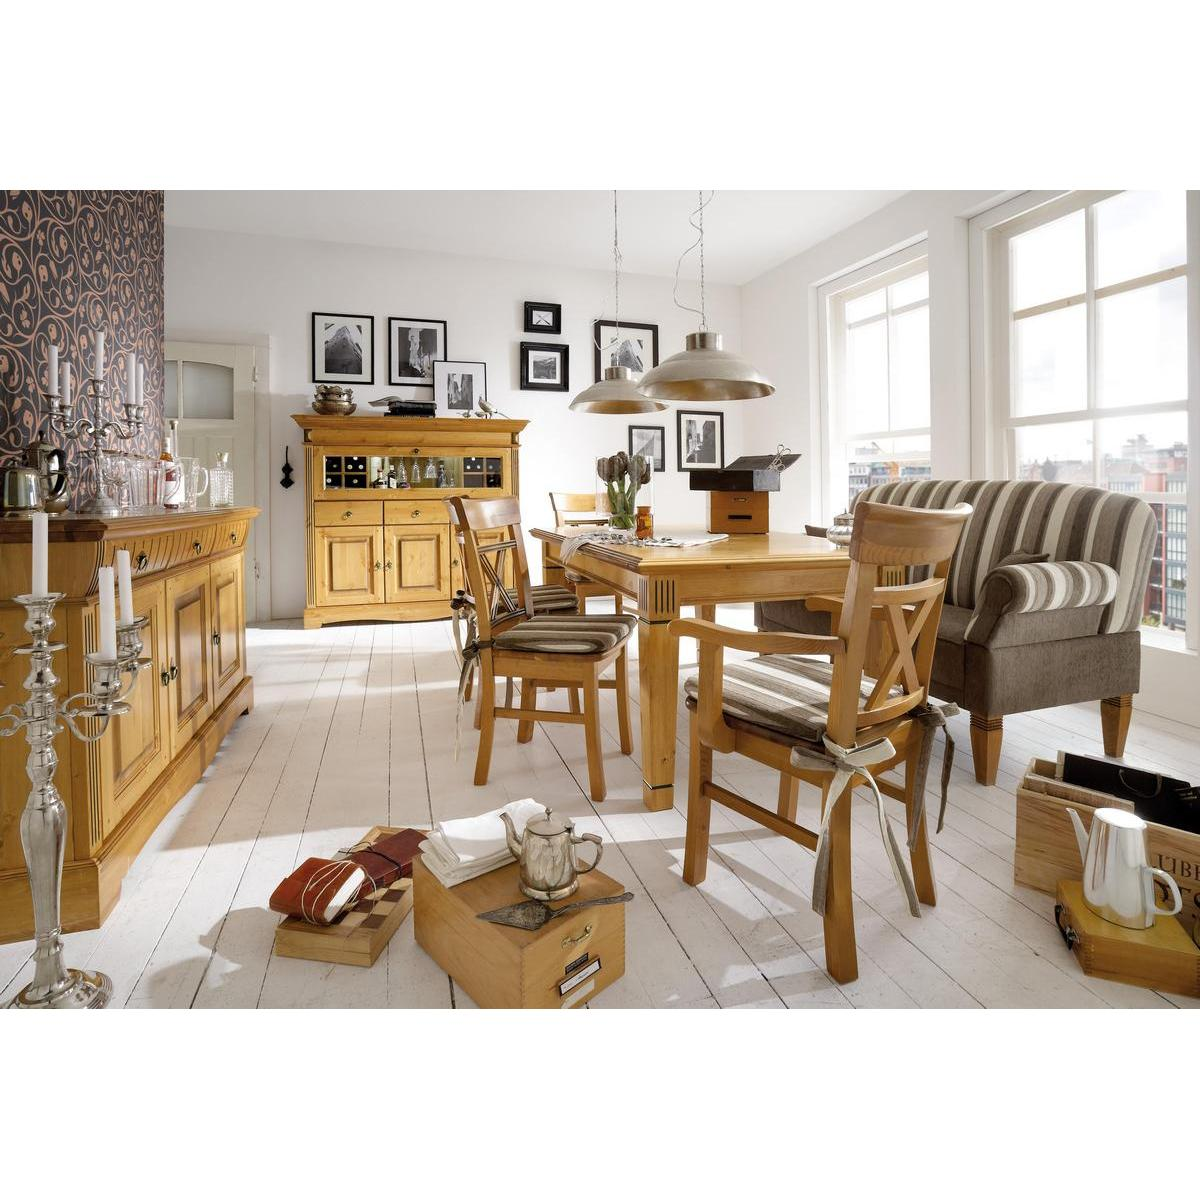 landhaus tisch esstisch goldbraun patiniert 180x95 g teborg kiefer massiv. Black Bedroom Furniture Sets. Home Design Ideas